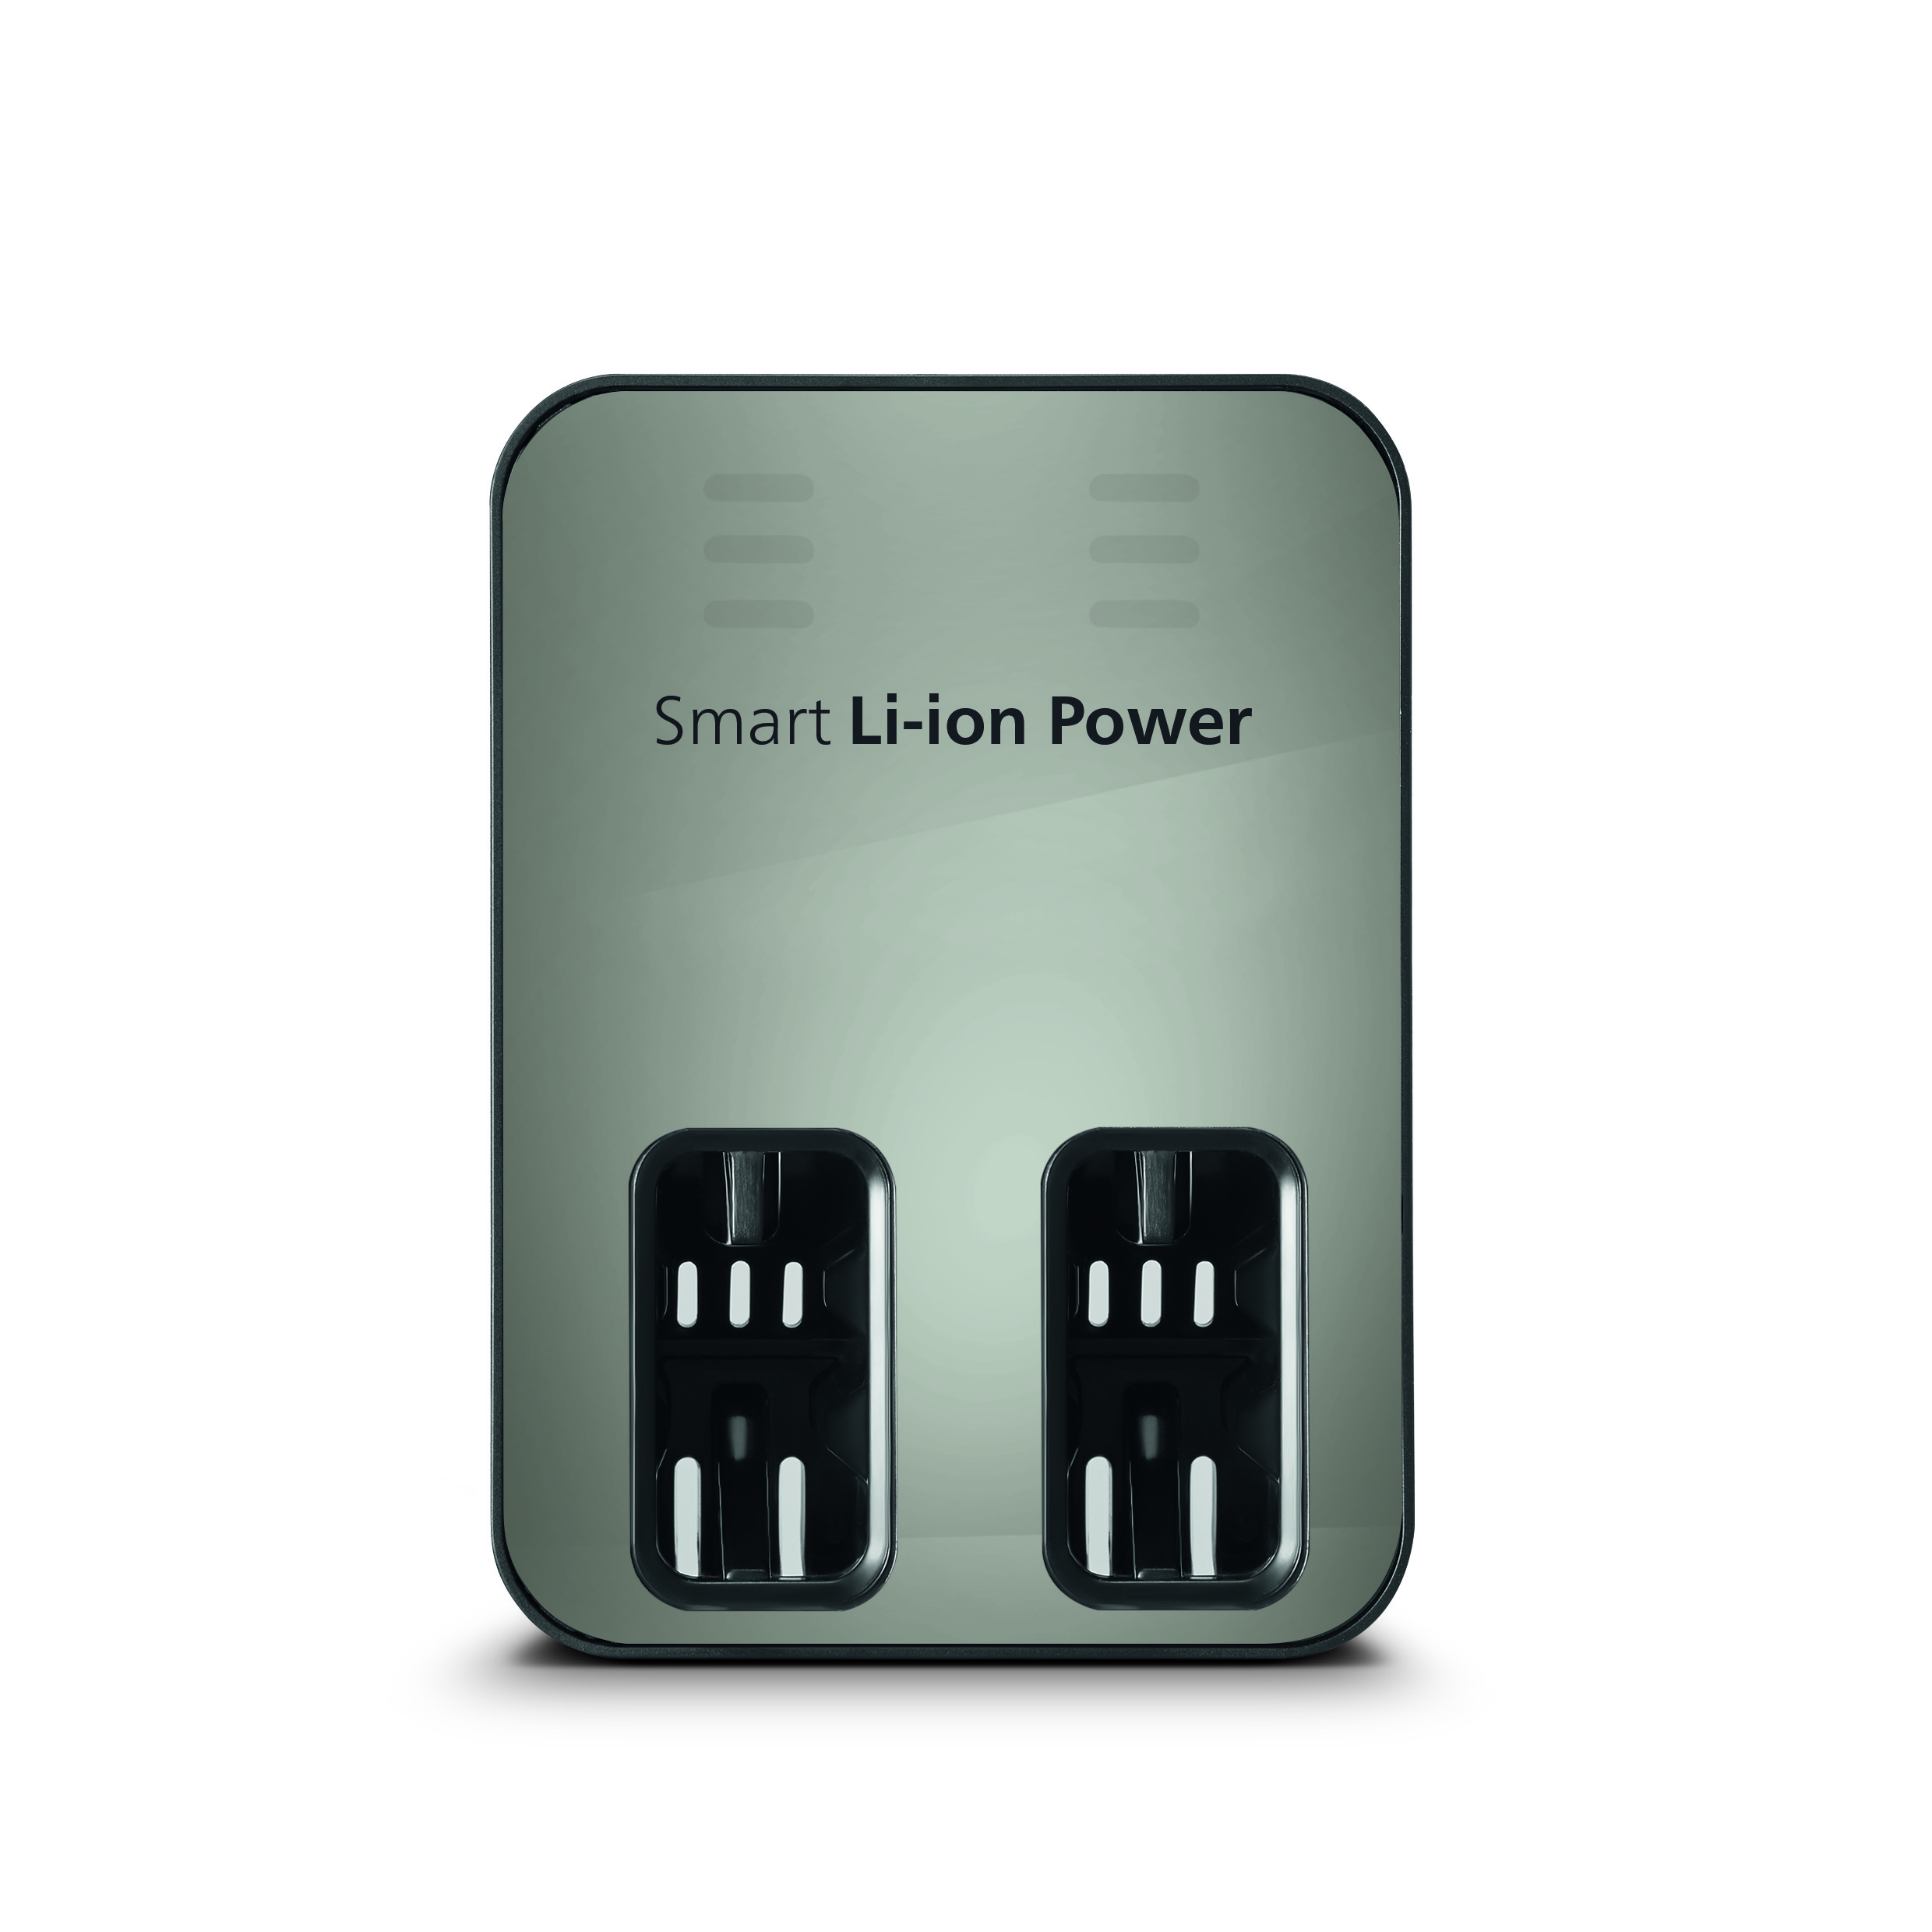 Smart Li-Ion Power